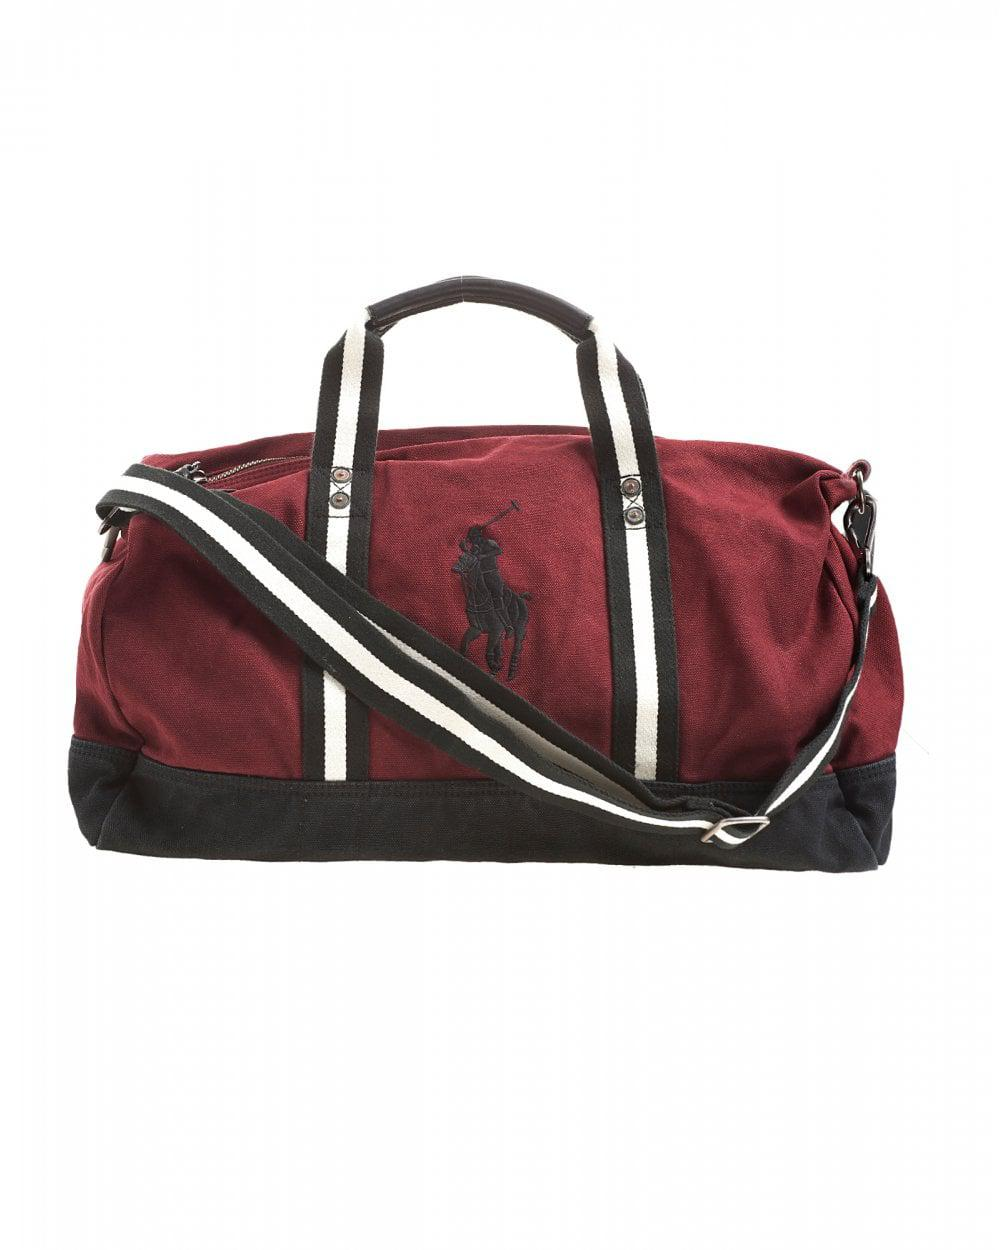 97671c0a38 Ralph Lauren Polo Player Striped Wine Red Gym Bag in Red for Men - Lyst